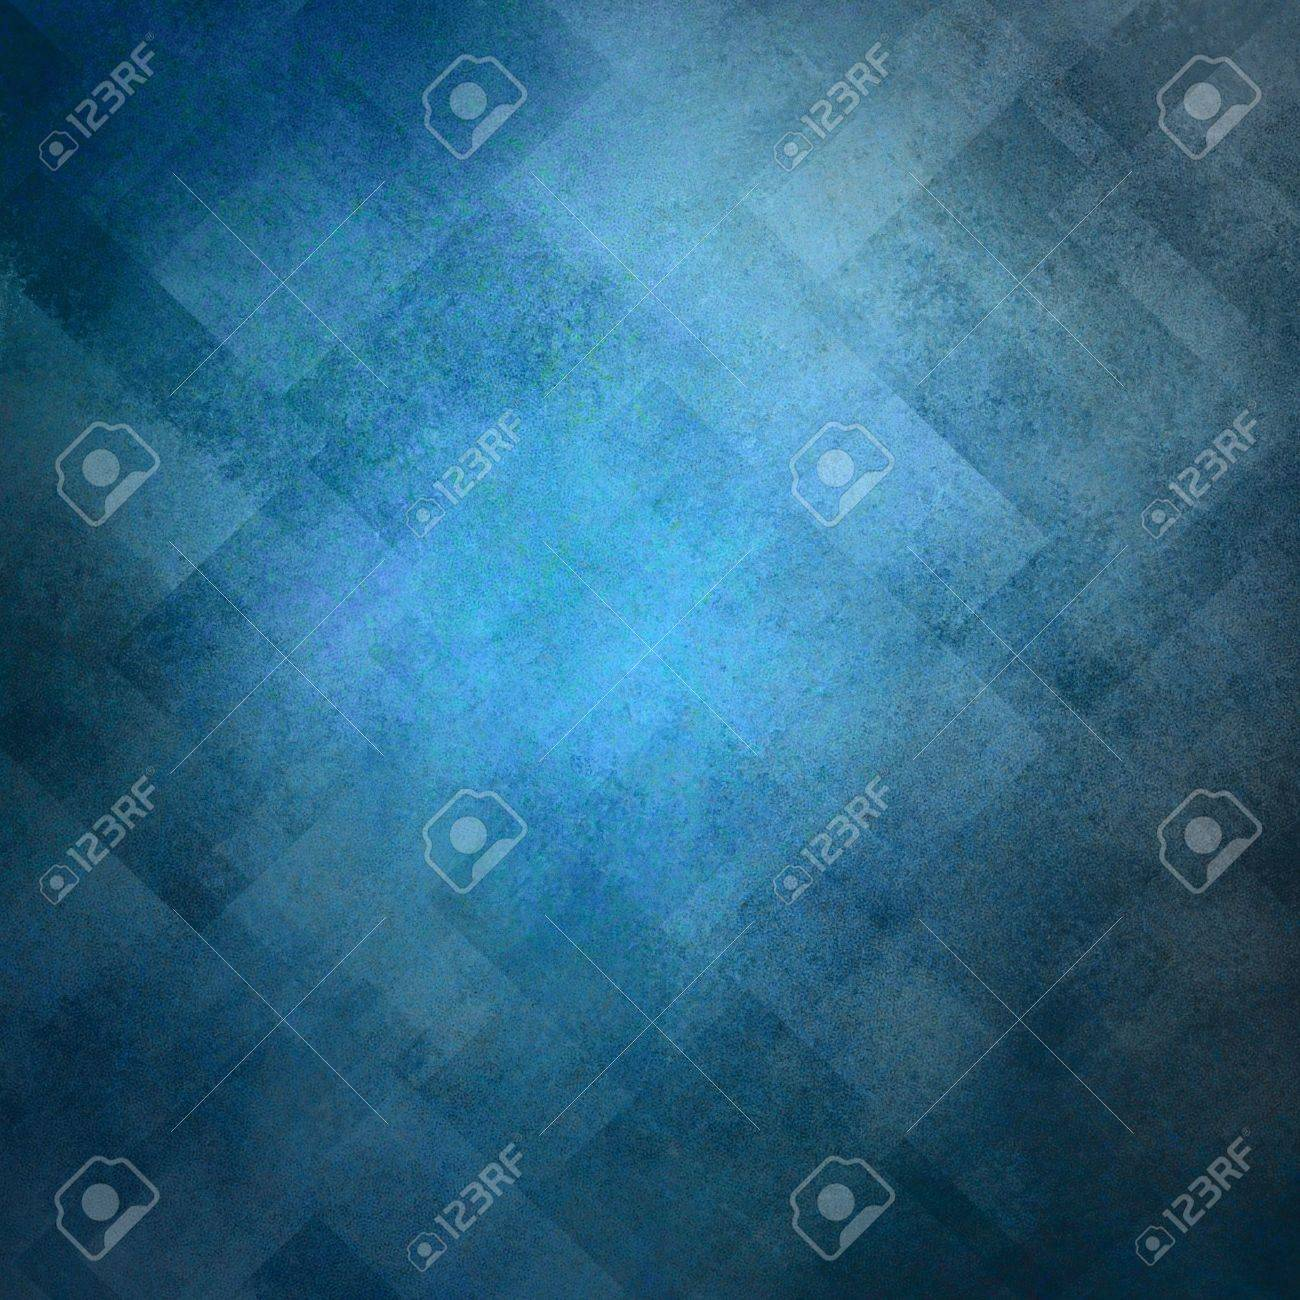 abstract blue background image pattern design on old vintage grunge background texture, blue paper diagonal block pattern with geometric shapes and line design elements, luxury background for web ad Stock Photo - 16713336